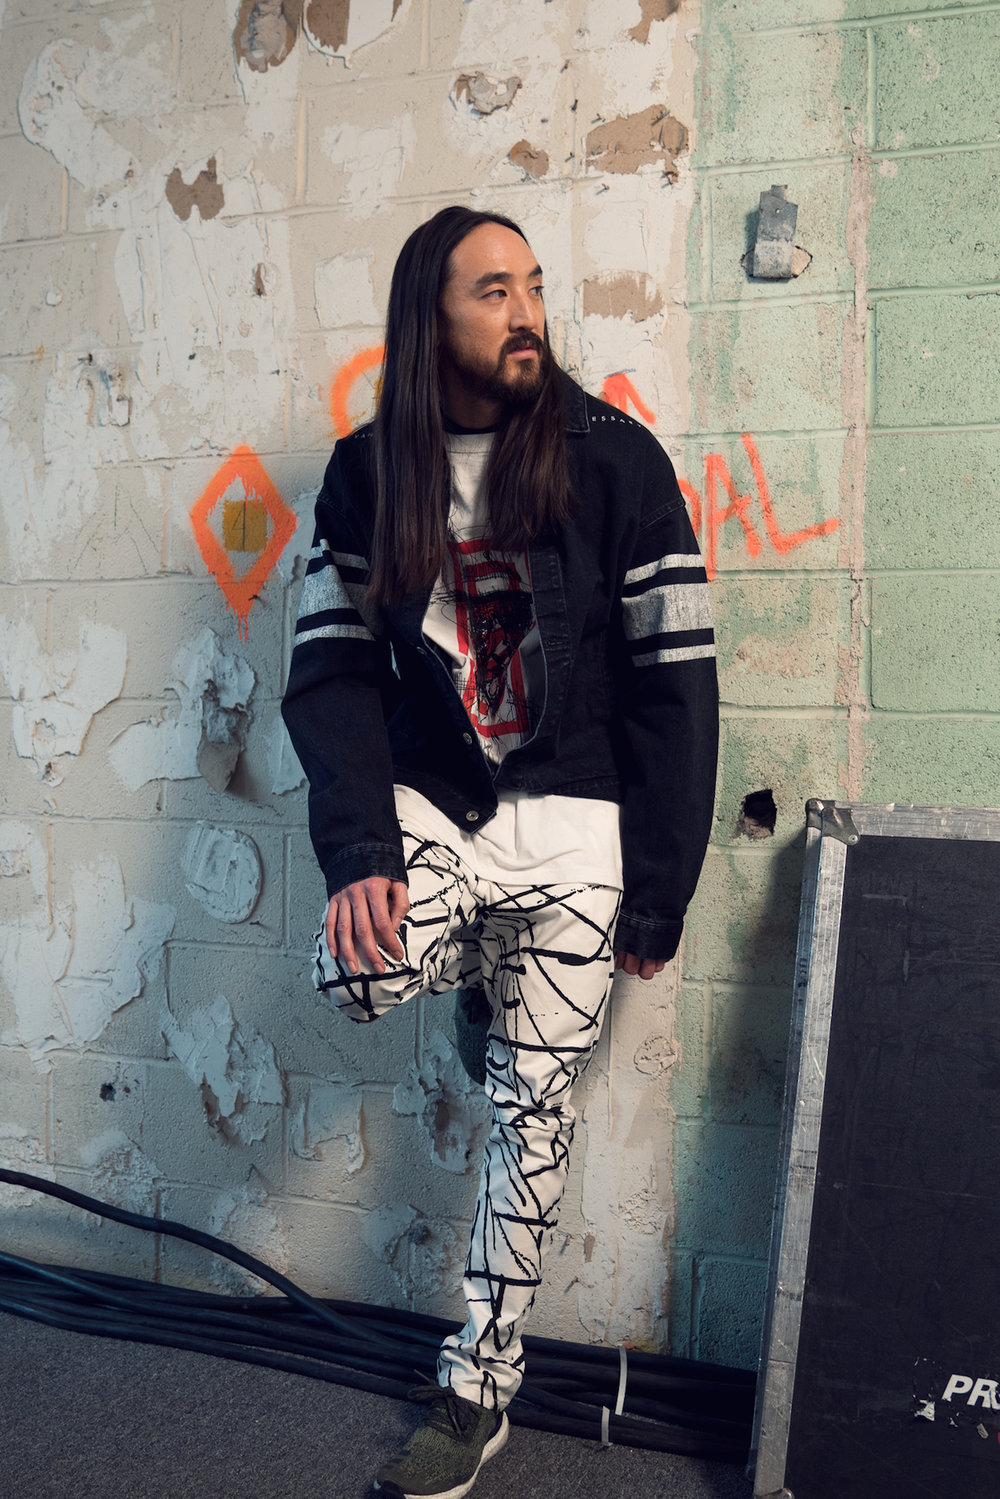 Steve Aoki debuted his collaboration with designer Dim Mak at this year's NYFW, complete with punk bands and models shredding on skateboards in a custom built half pipe. Before all the noise though, I was able to grab him for a quick shot backstage. Shot with my Sony A7RII w/ Sony 24-70 2.8 G Master | ISO 640 | 1/125s | f/2.8